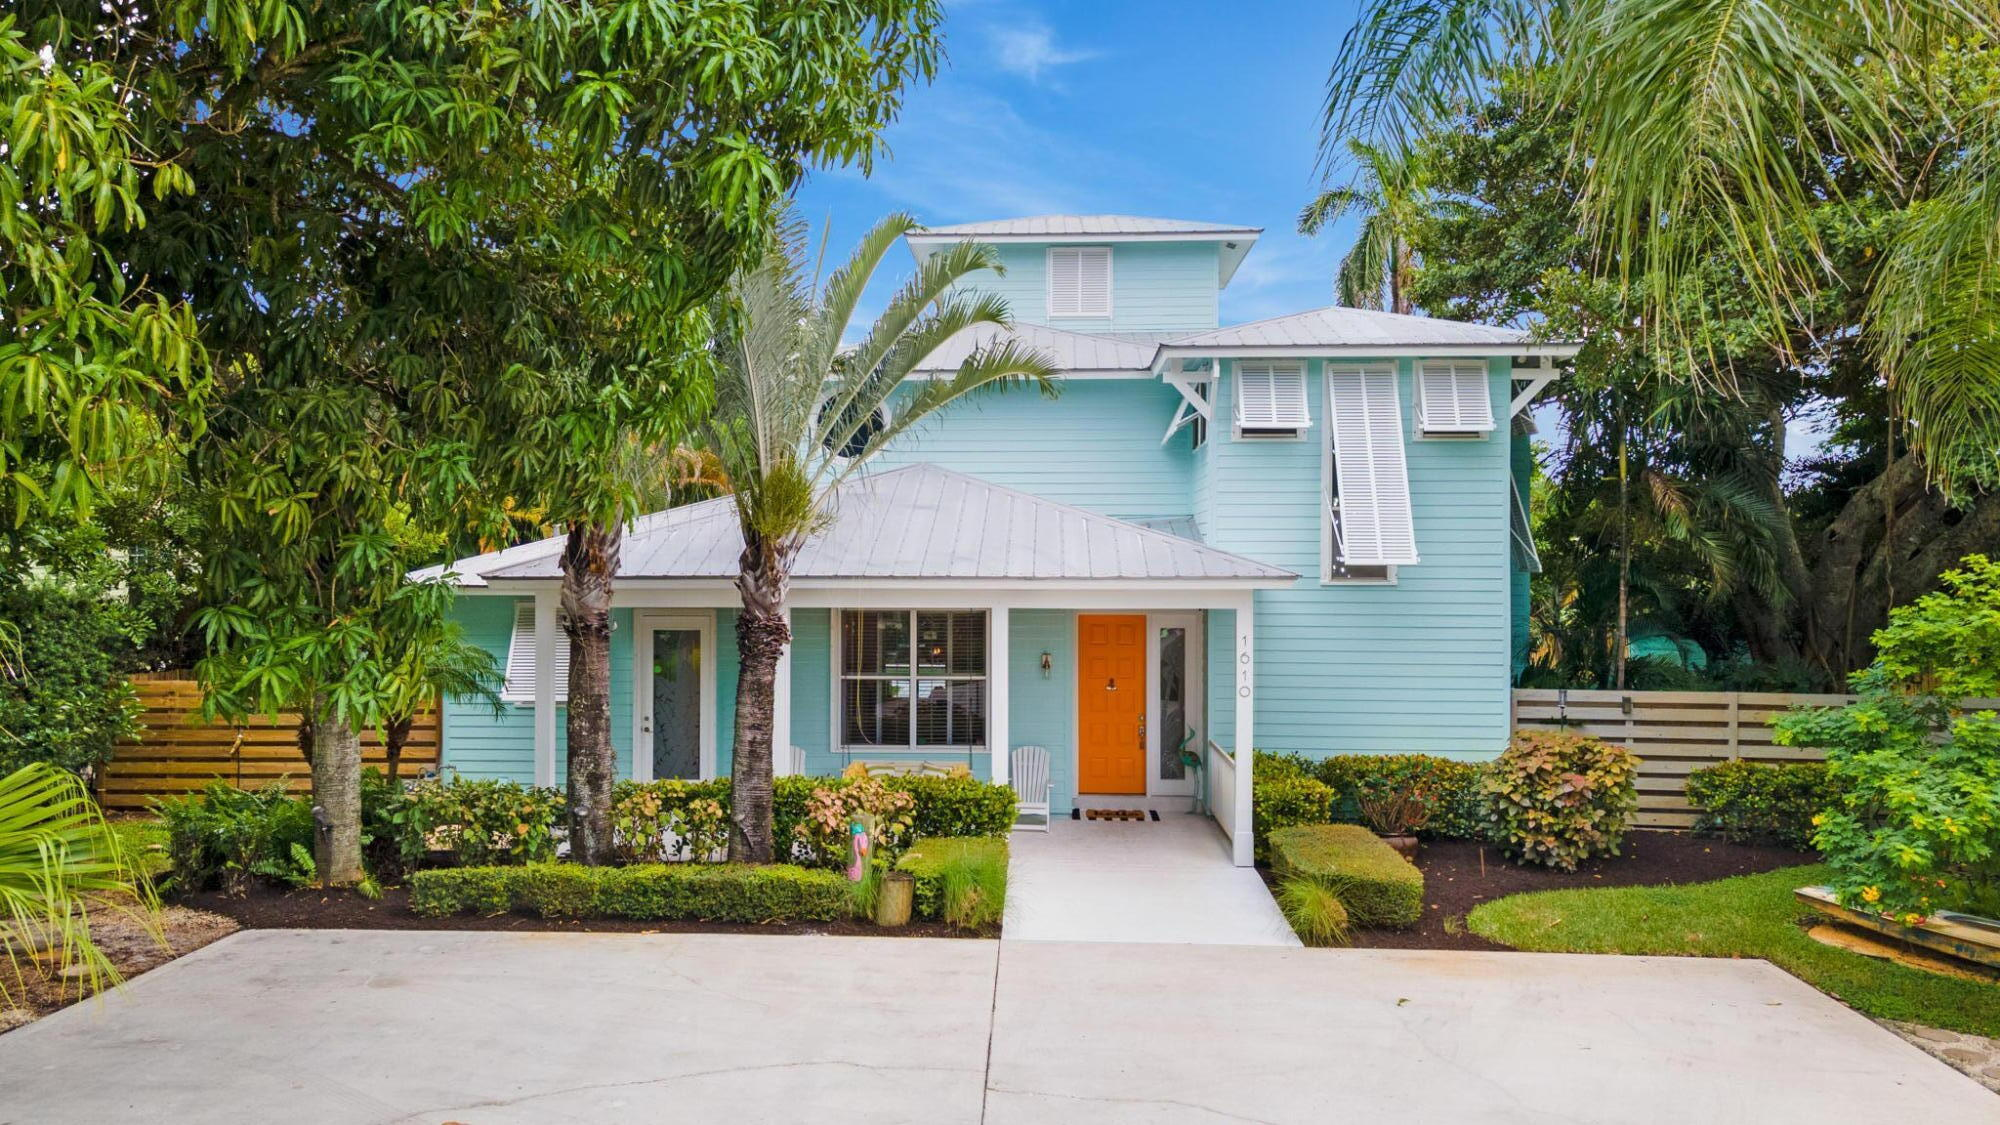 Bright and alluring Key West-Coastal style home on a highly desirable street. This beautiful home on an oversized lot has Intracoastal and golf course views, an open floor plan and has undergone extensive renovations. The stunning gourmet, upgraded kitchen boasts two 9 foot matching islands with extra thick, gorgeous quartz countertops, Kitchen Aid chef-grade appliance suite, dual fuel stove, appliance garage, built-in microwave, wine fridge, two pantries, breakfast area and formal dining room.  Must-see laundry room includes custom cabinetry, quartz countertops, LG washer and gas dryer, farm sink and ample storage space.  The expansive back yard paradise of more than half an acre is ideal for entertaining and features a substantial saltwater pool with fountains, covered and extended patio, fire pit, basketball court, bamboo fenced-in yard and large storage shed. The extensive driveway also allows plenty of parking.  Retreat into the large primary suite featuring three custom closets, including two walk-ins, and a covered balcony overlooking the lushly landscaped backyard and Intracoastal waterway. The fully remodeled  bath has dual sinks, as well as a separate shower and luxurious freestanding tub and Toto toilet. A unique feature of this home is the spiral staircase from the primary bedroom which leads to the sun-filled bonus room with balcony - ideally suited for a home office, yoga studio or gym. In addition, a first floor mini-primary bedroom boasts two closets plus private access to patio, pool and gardens.  Freshly painted inside and out, other updates include whole house water filtration system, new A/C for the upstairs, beautiful sun-filled staircase, new baseboard and trim, 4 zone sprinkler system including rust removal system, upgraded lighting and closet systems, tankless water heater, pickled oak floors, Italian porcelain wood-looking floors with matching decorative barn door that opens to the bathroom and bedroom on the first floor and more.  Your drea